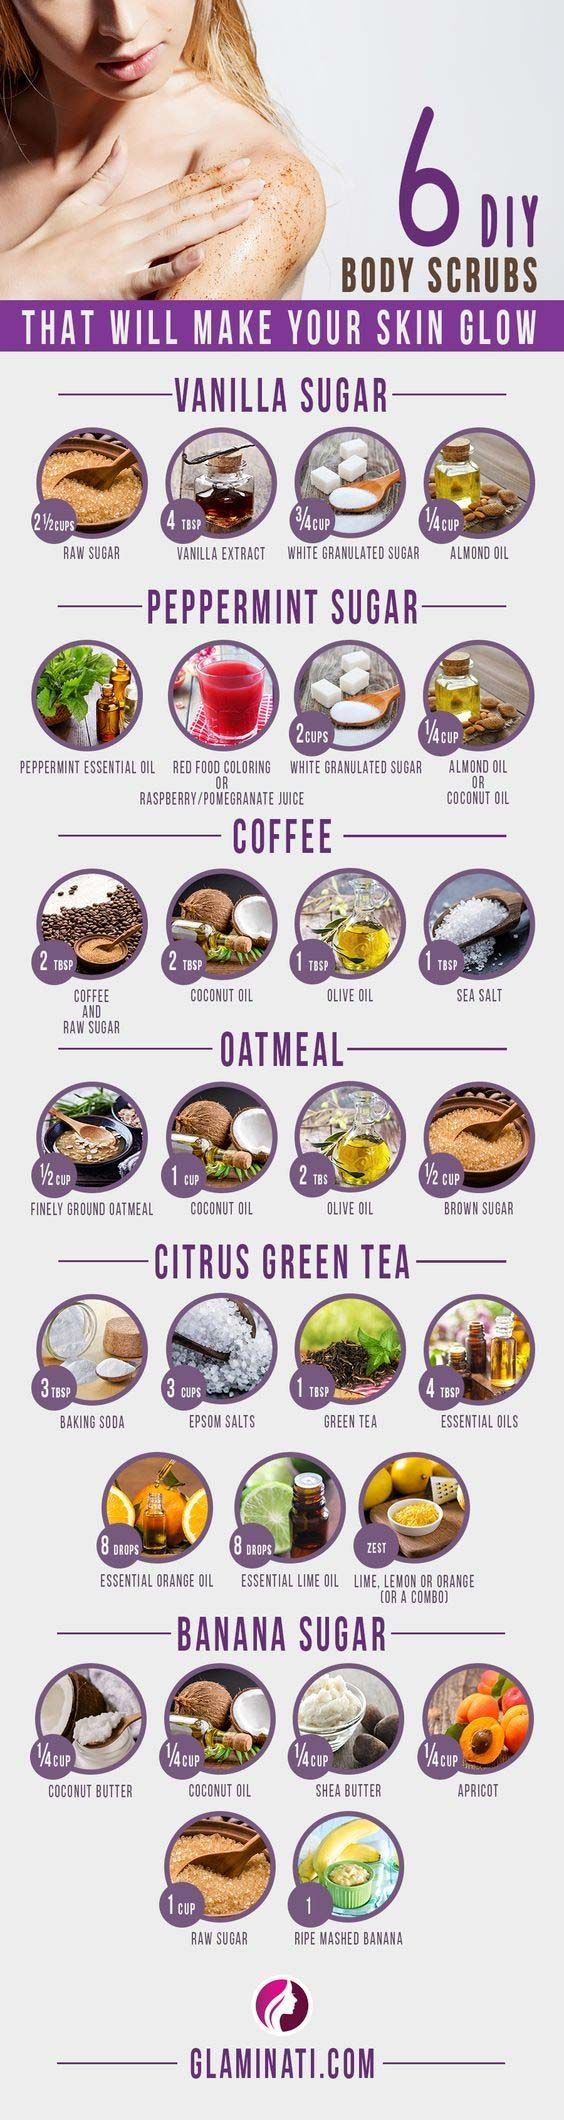 DIY Body Scrubs That Will Make Your Skin Glow And#8211; Infographic ★ See more: http://glaminati.com/simple-diy-body-scrubs/